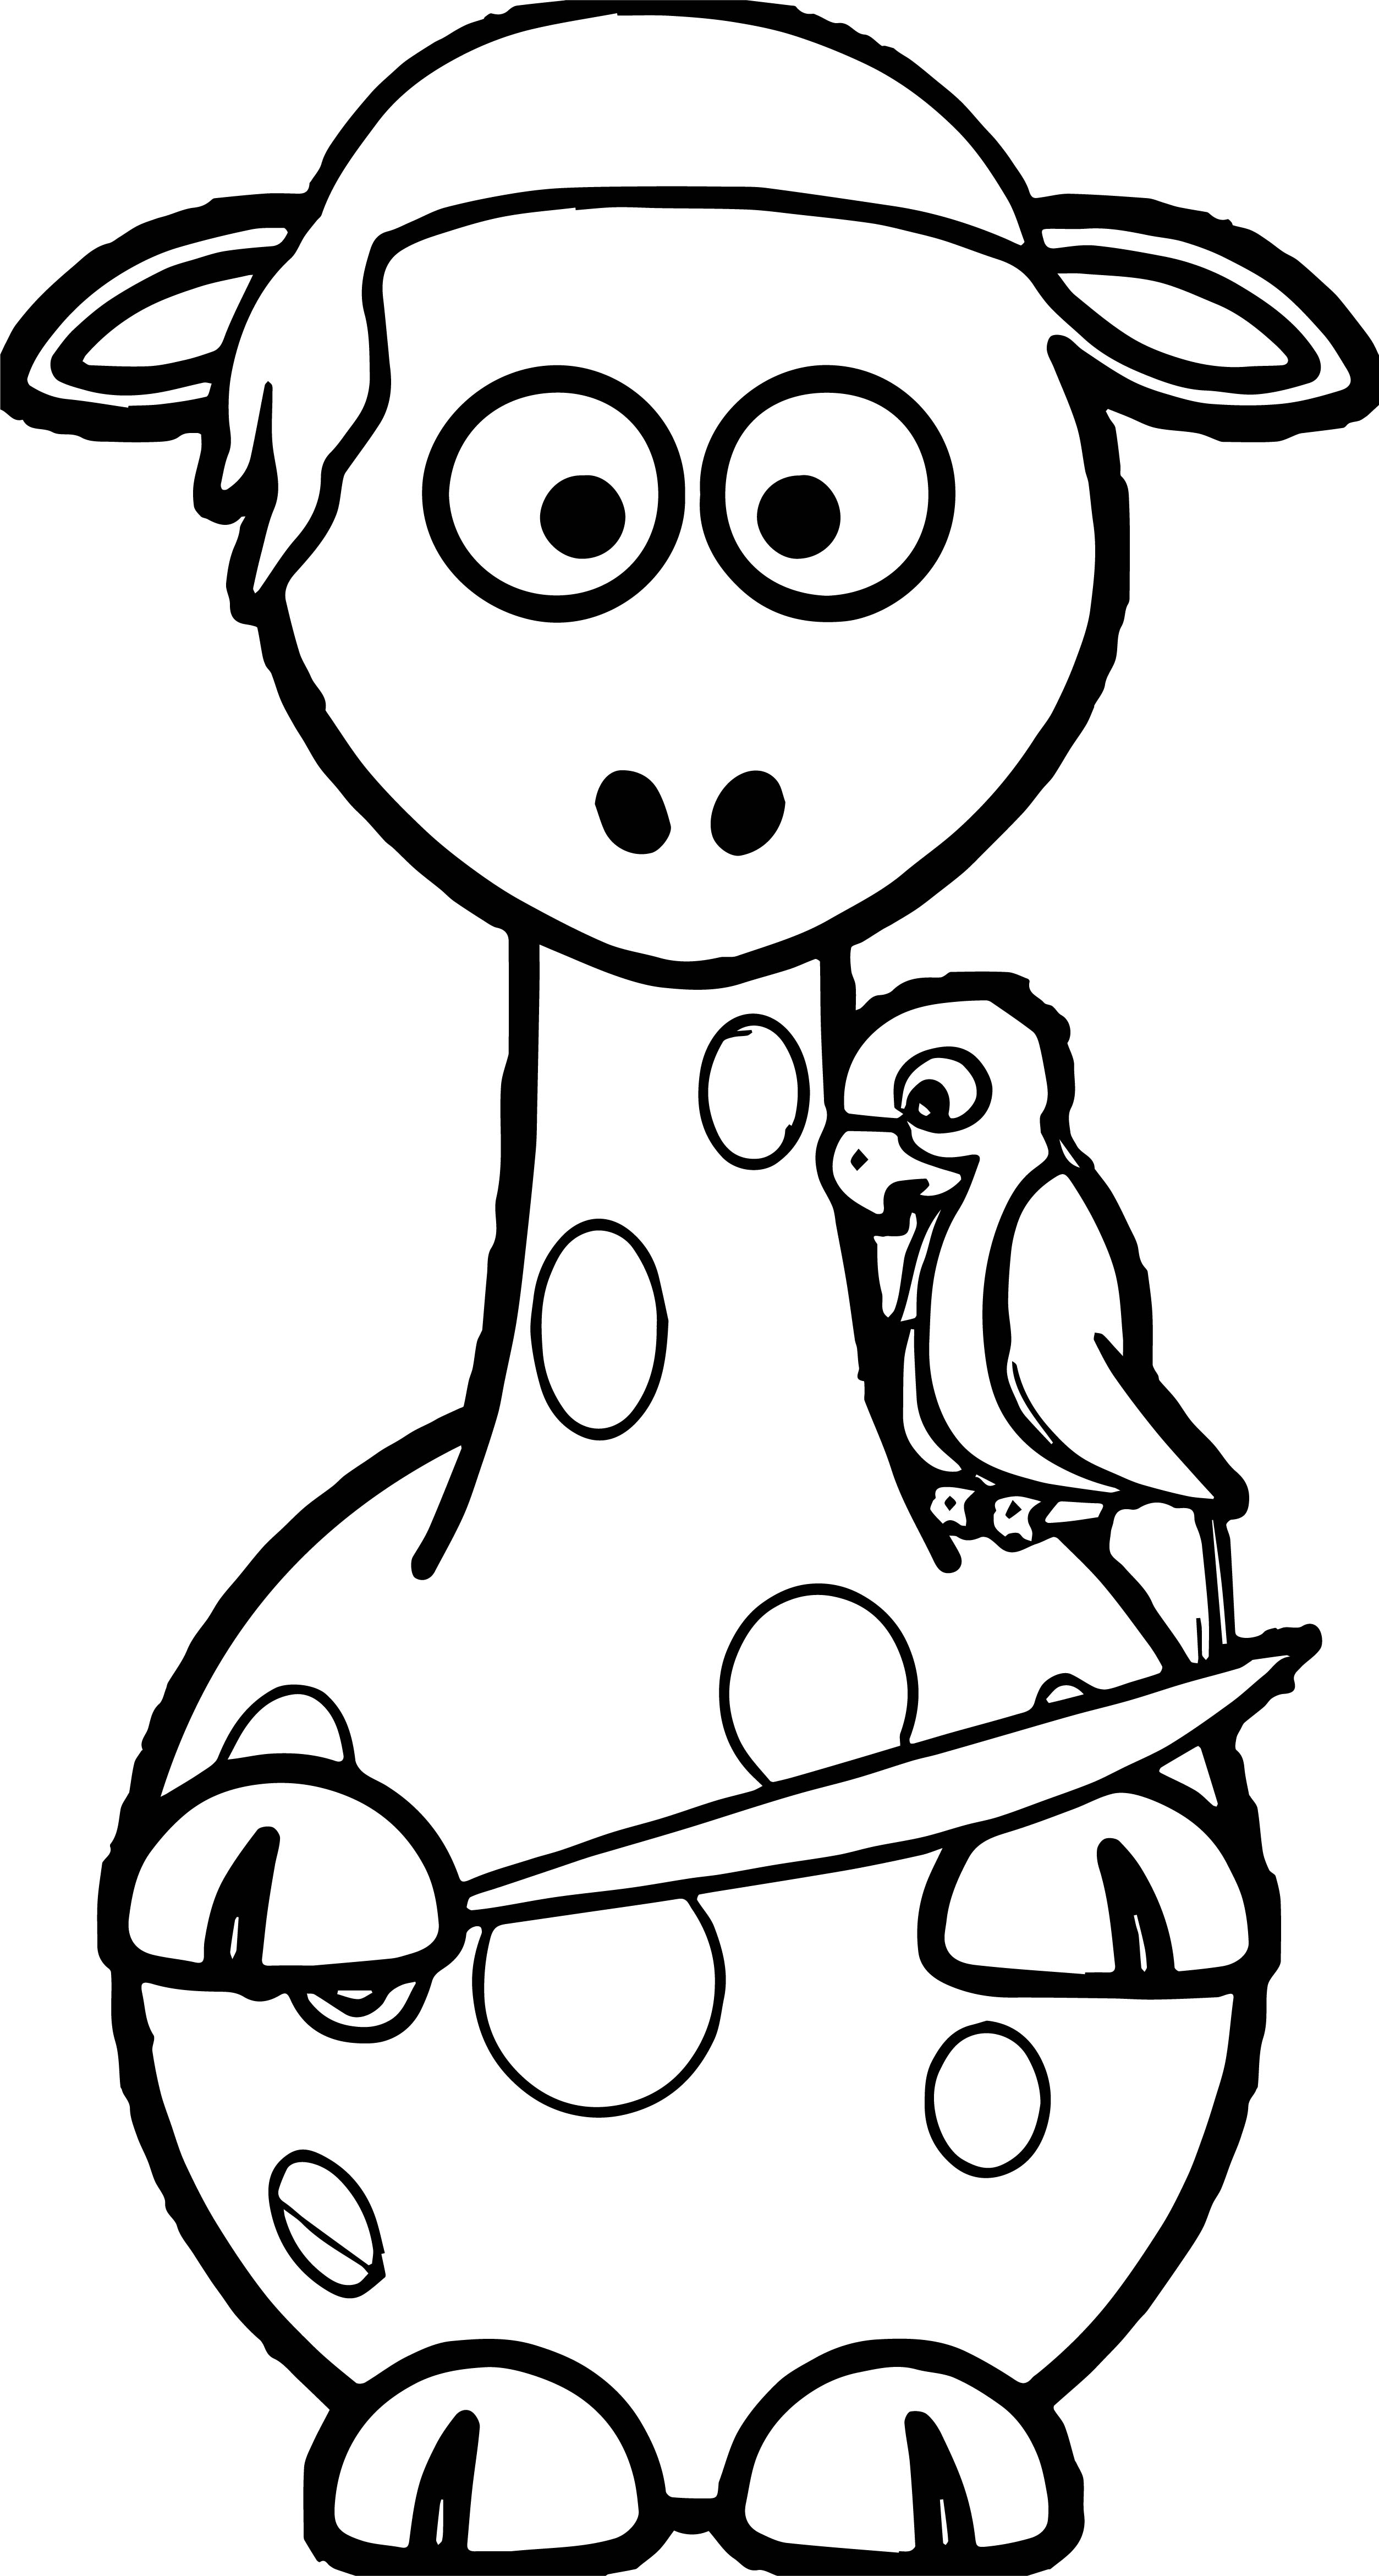 pittsburgh pirates coloring pages - pirate parrot coloring pages bltidm